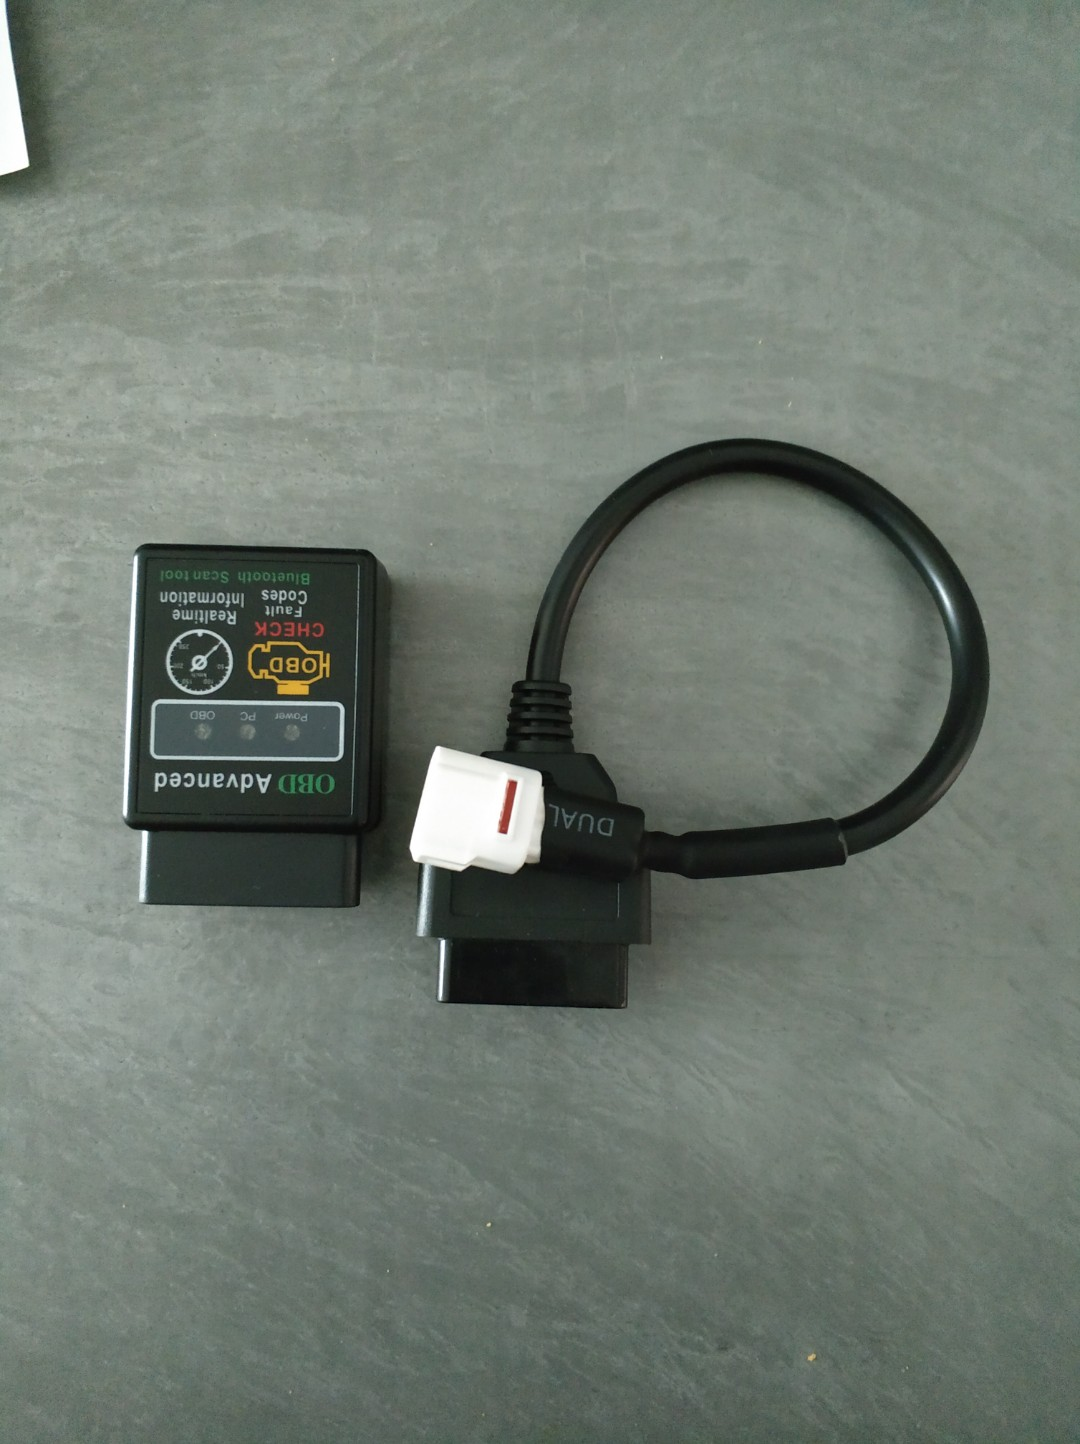 Yamaha diagnostic tool connector for ODB2, Motorbikes